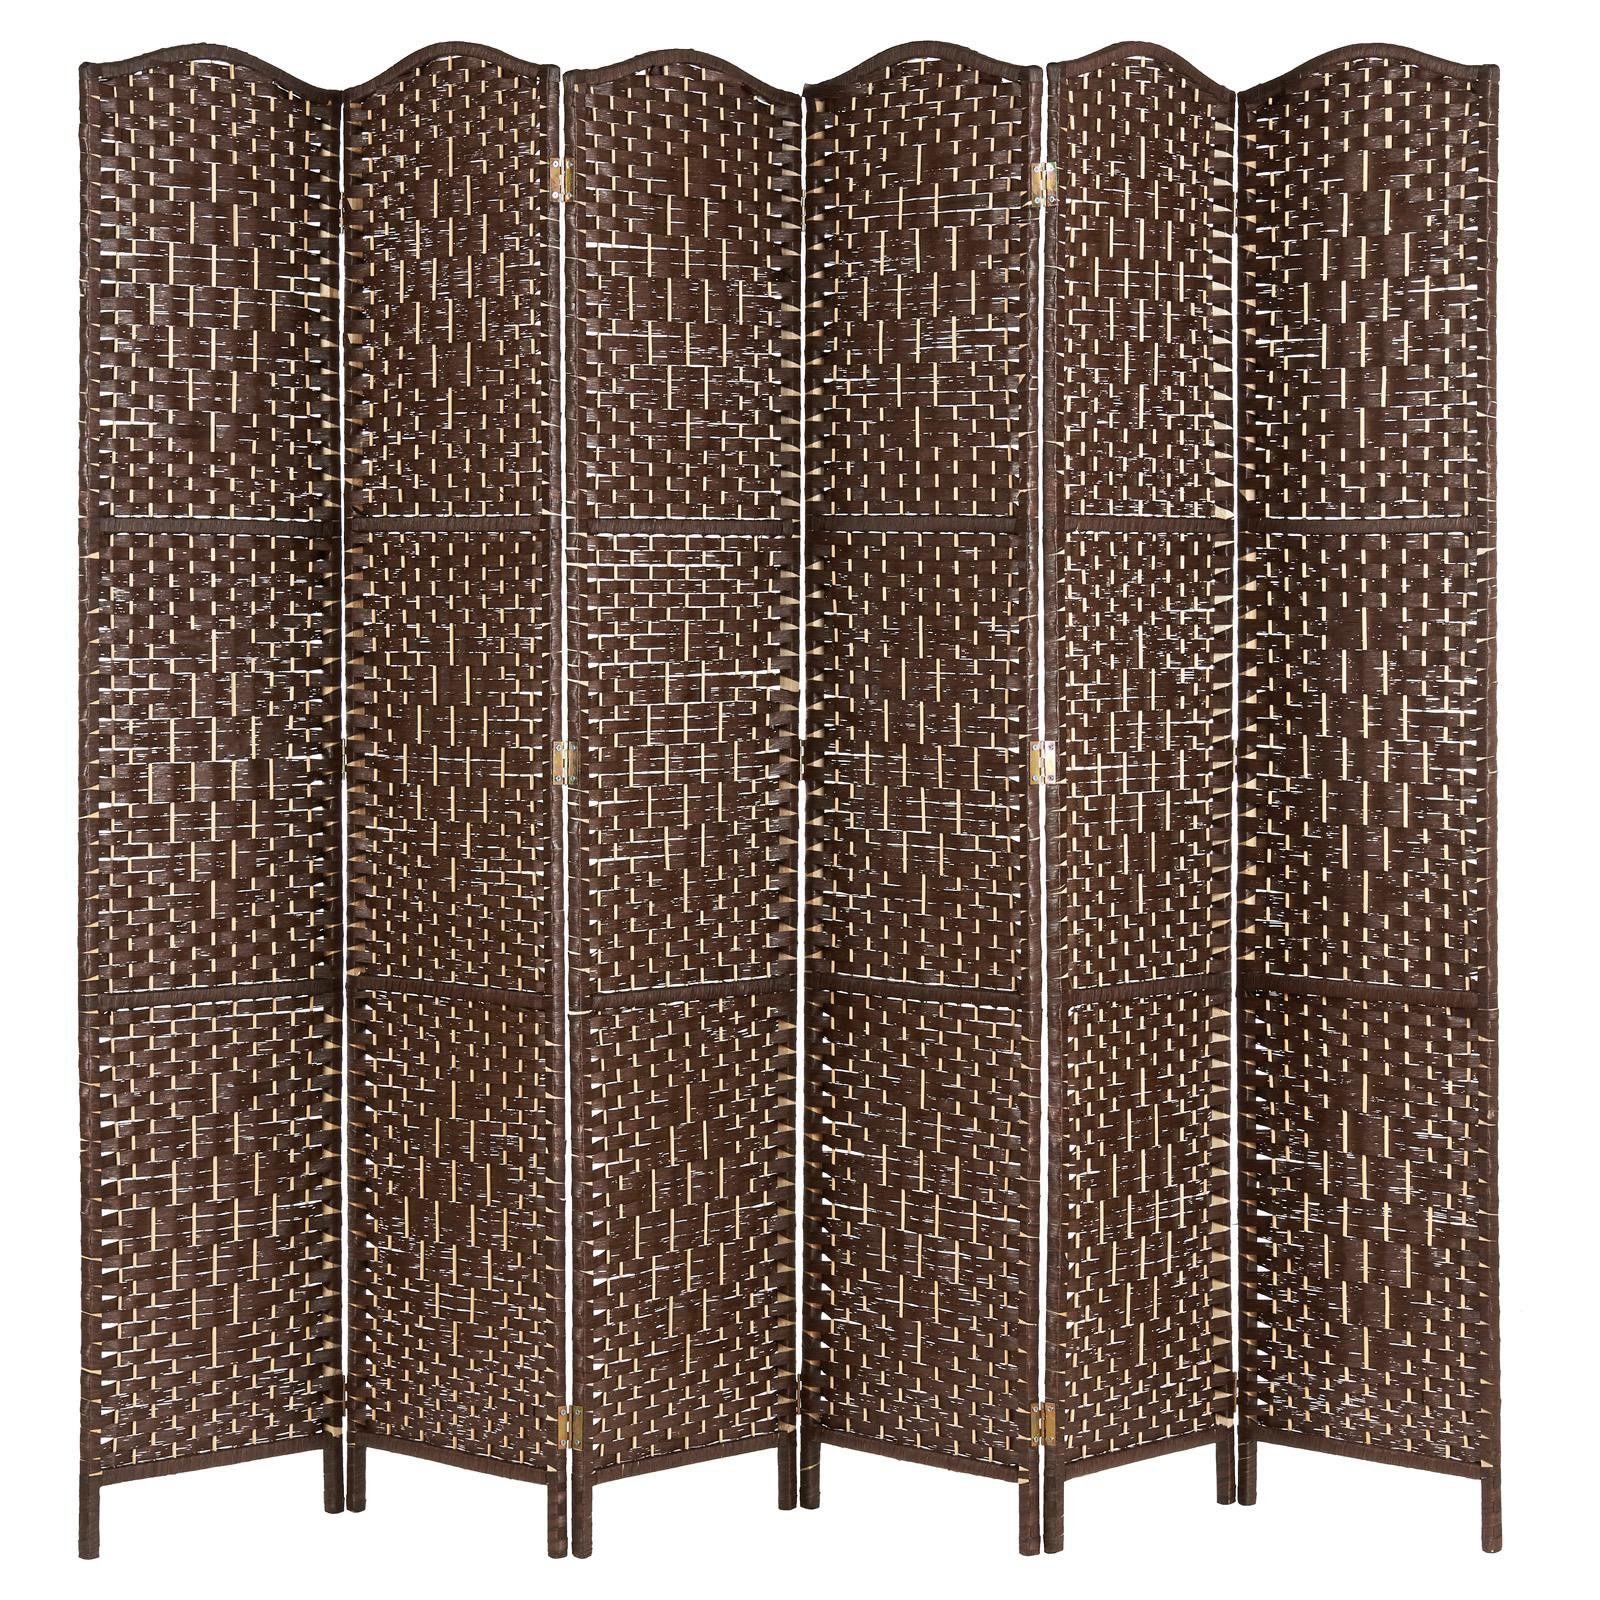 image-Hartleys Solid Weave Hand Made Wicker Room Divider - Brown - 6 Panel